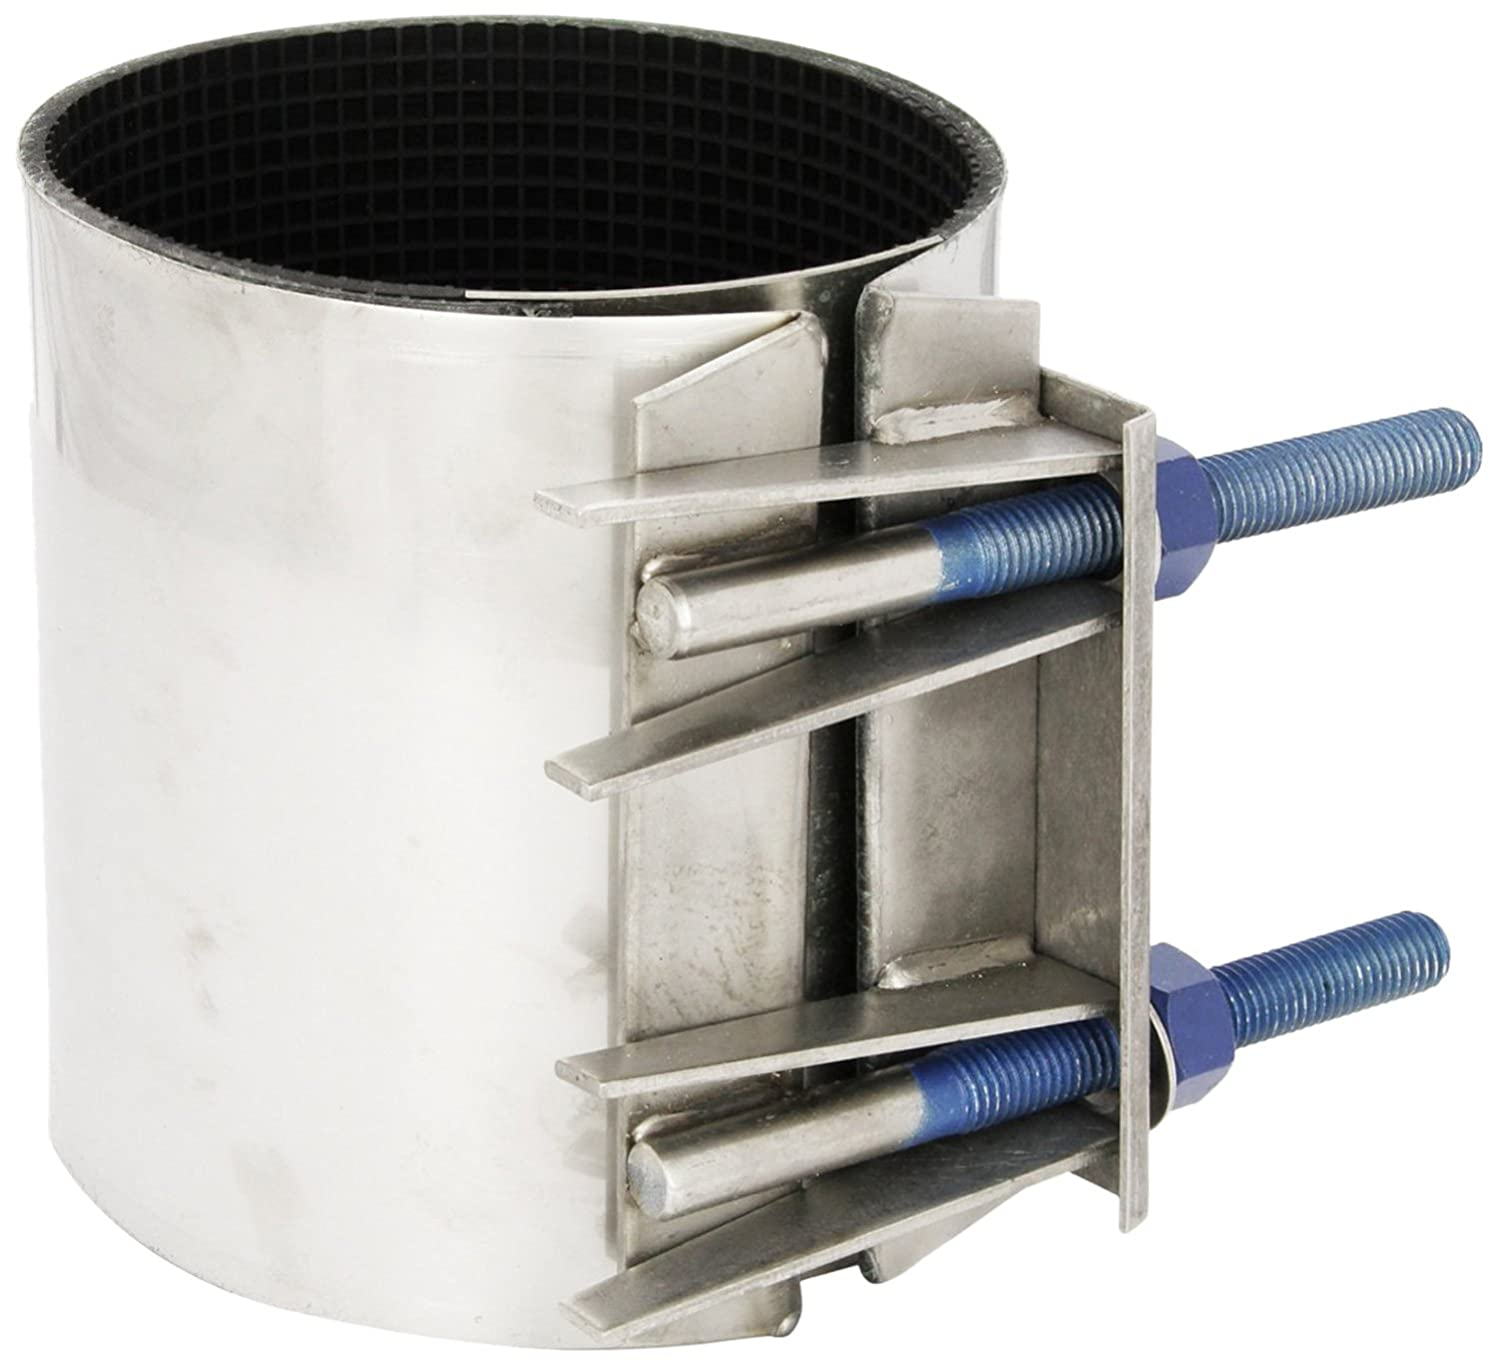 Stainless Steel Bolt 7-1//2 Length 3 Pipe Size Full Circle Smith-Blair Stainless Steel Repair Clamp 2 Bolts